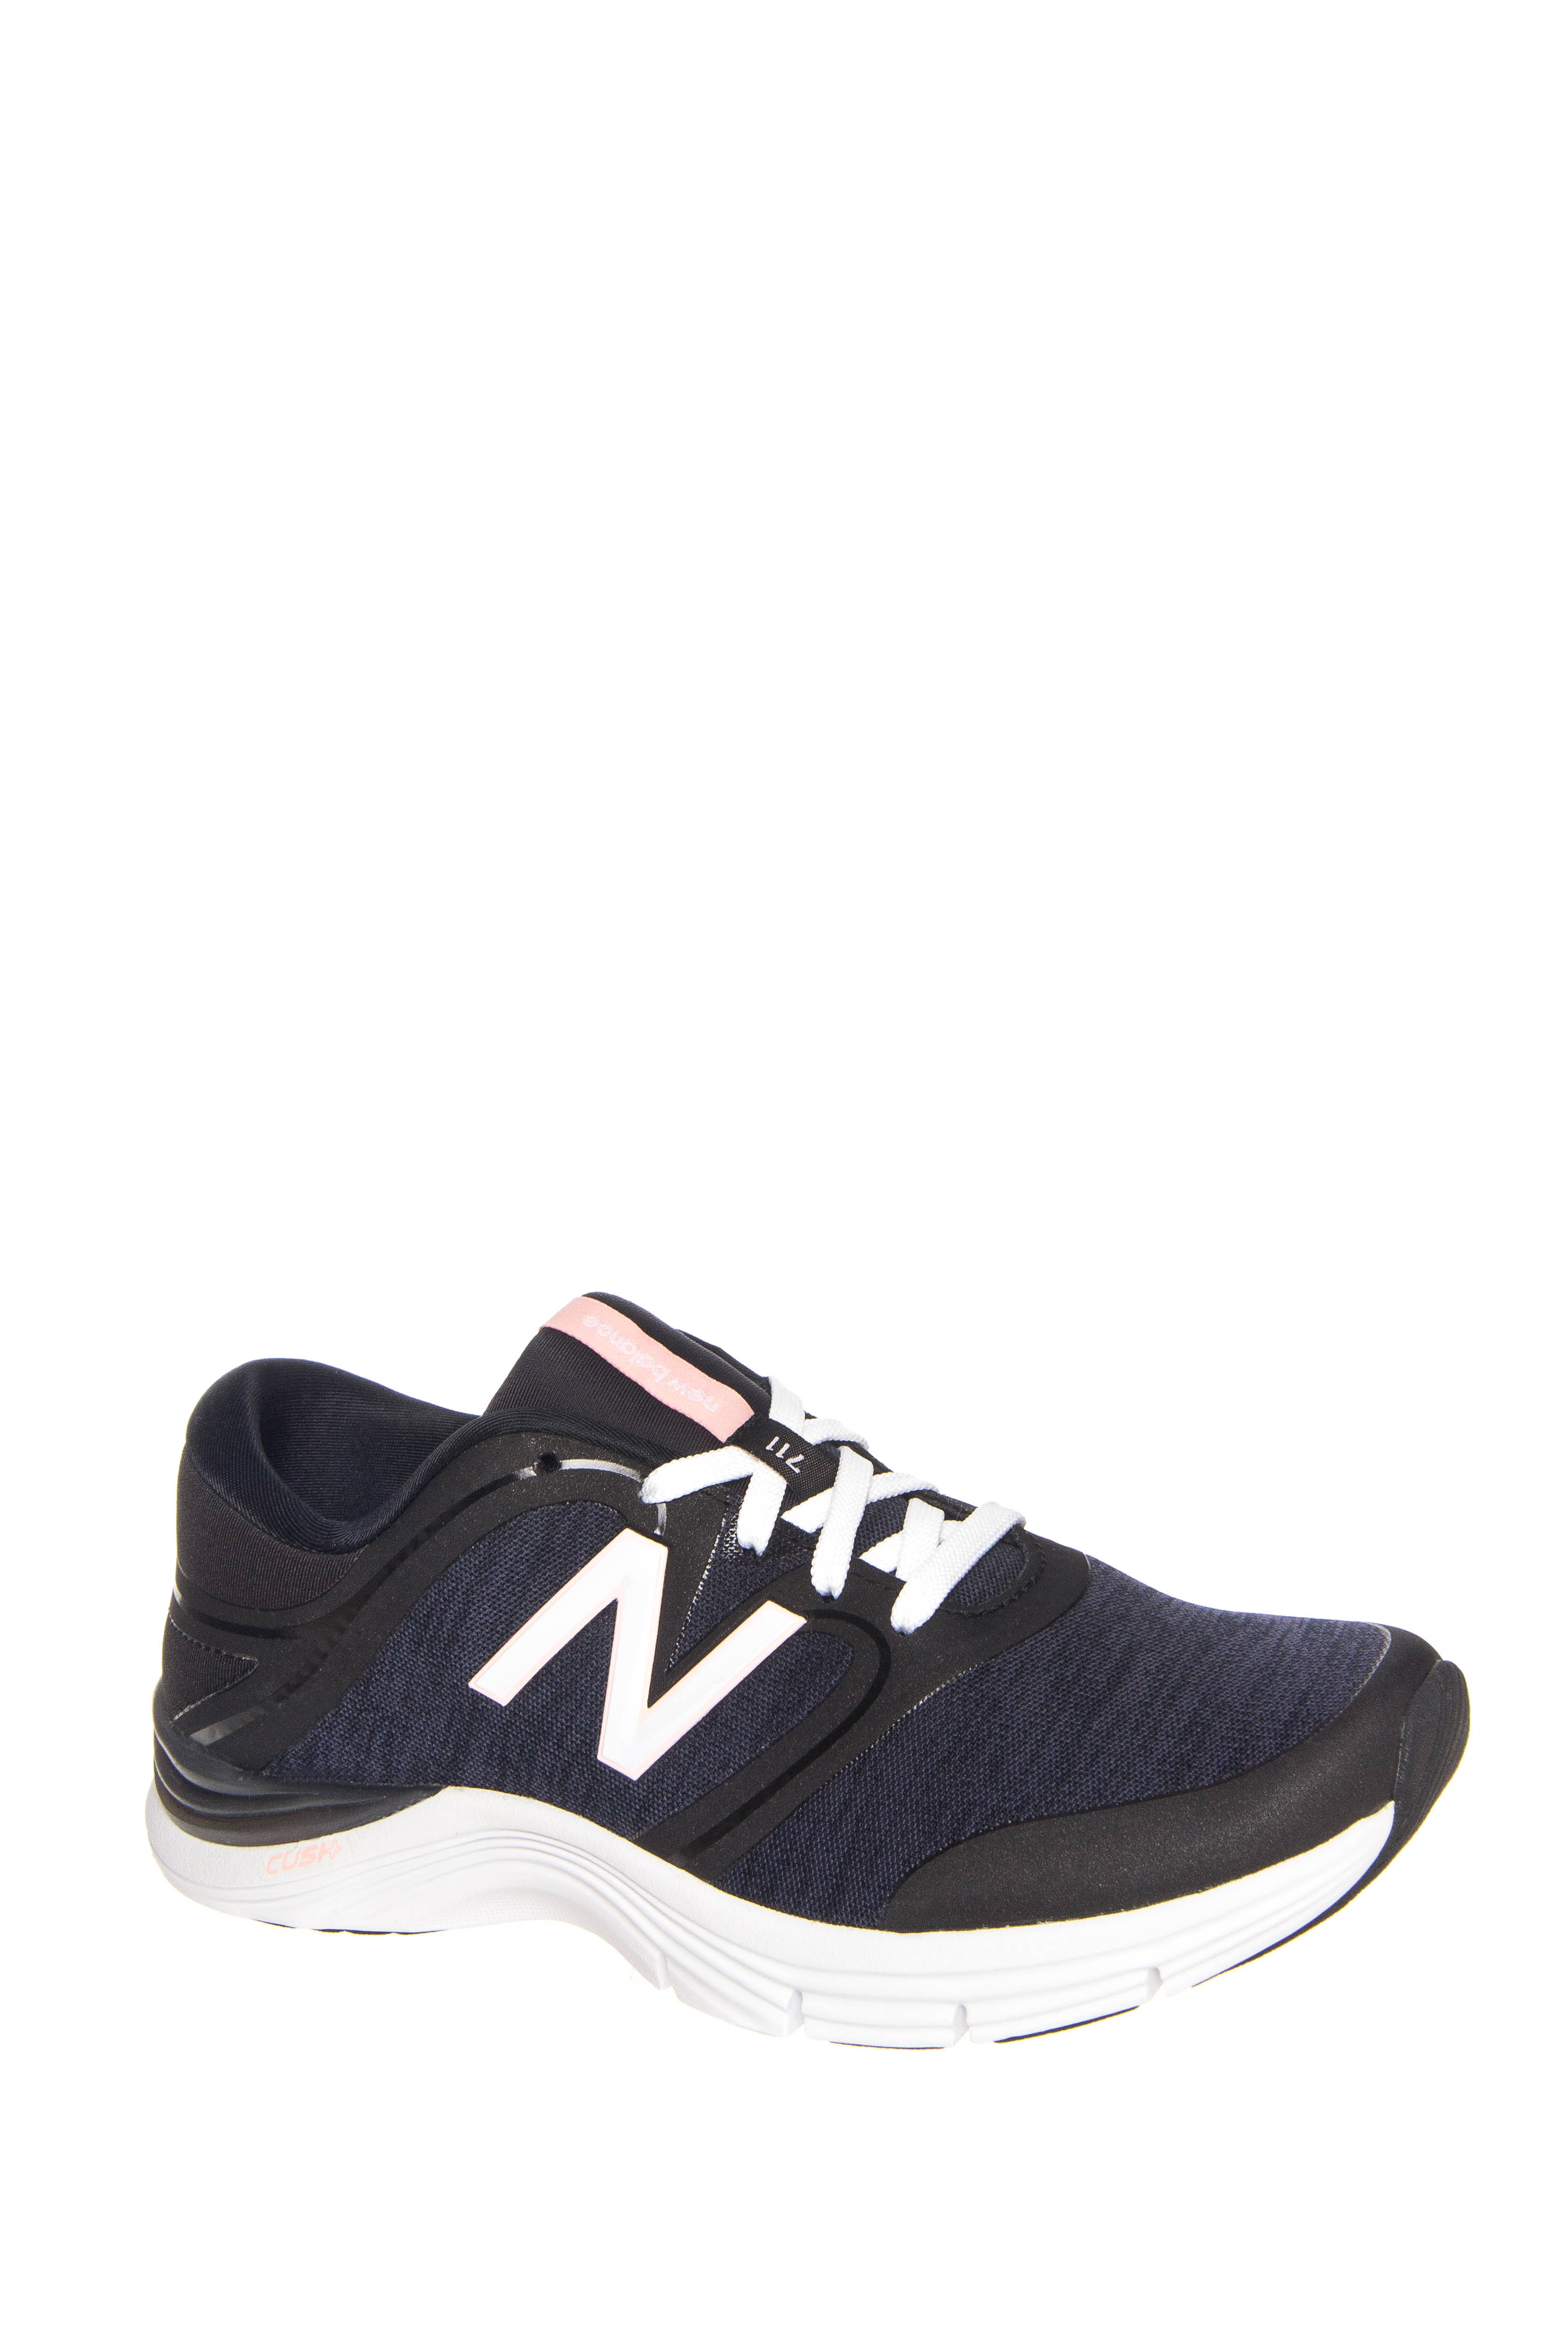 New Balance 711v2 Heathered Trainer Low Top Sneakers - Black